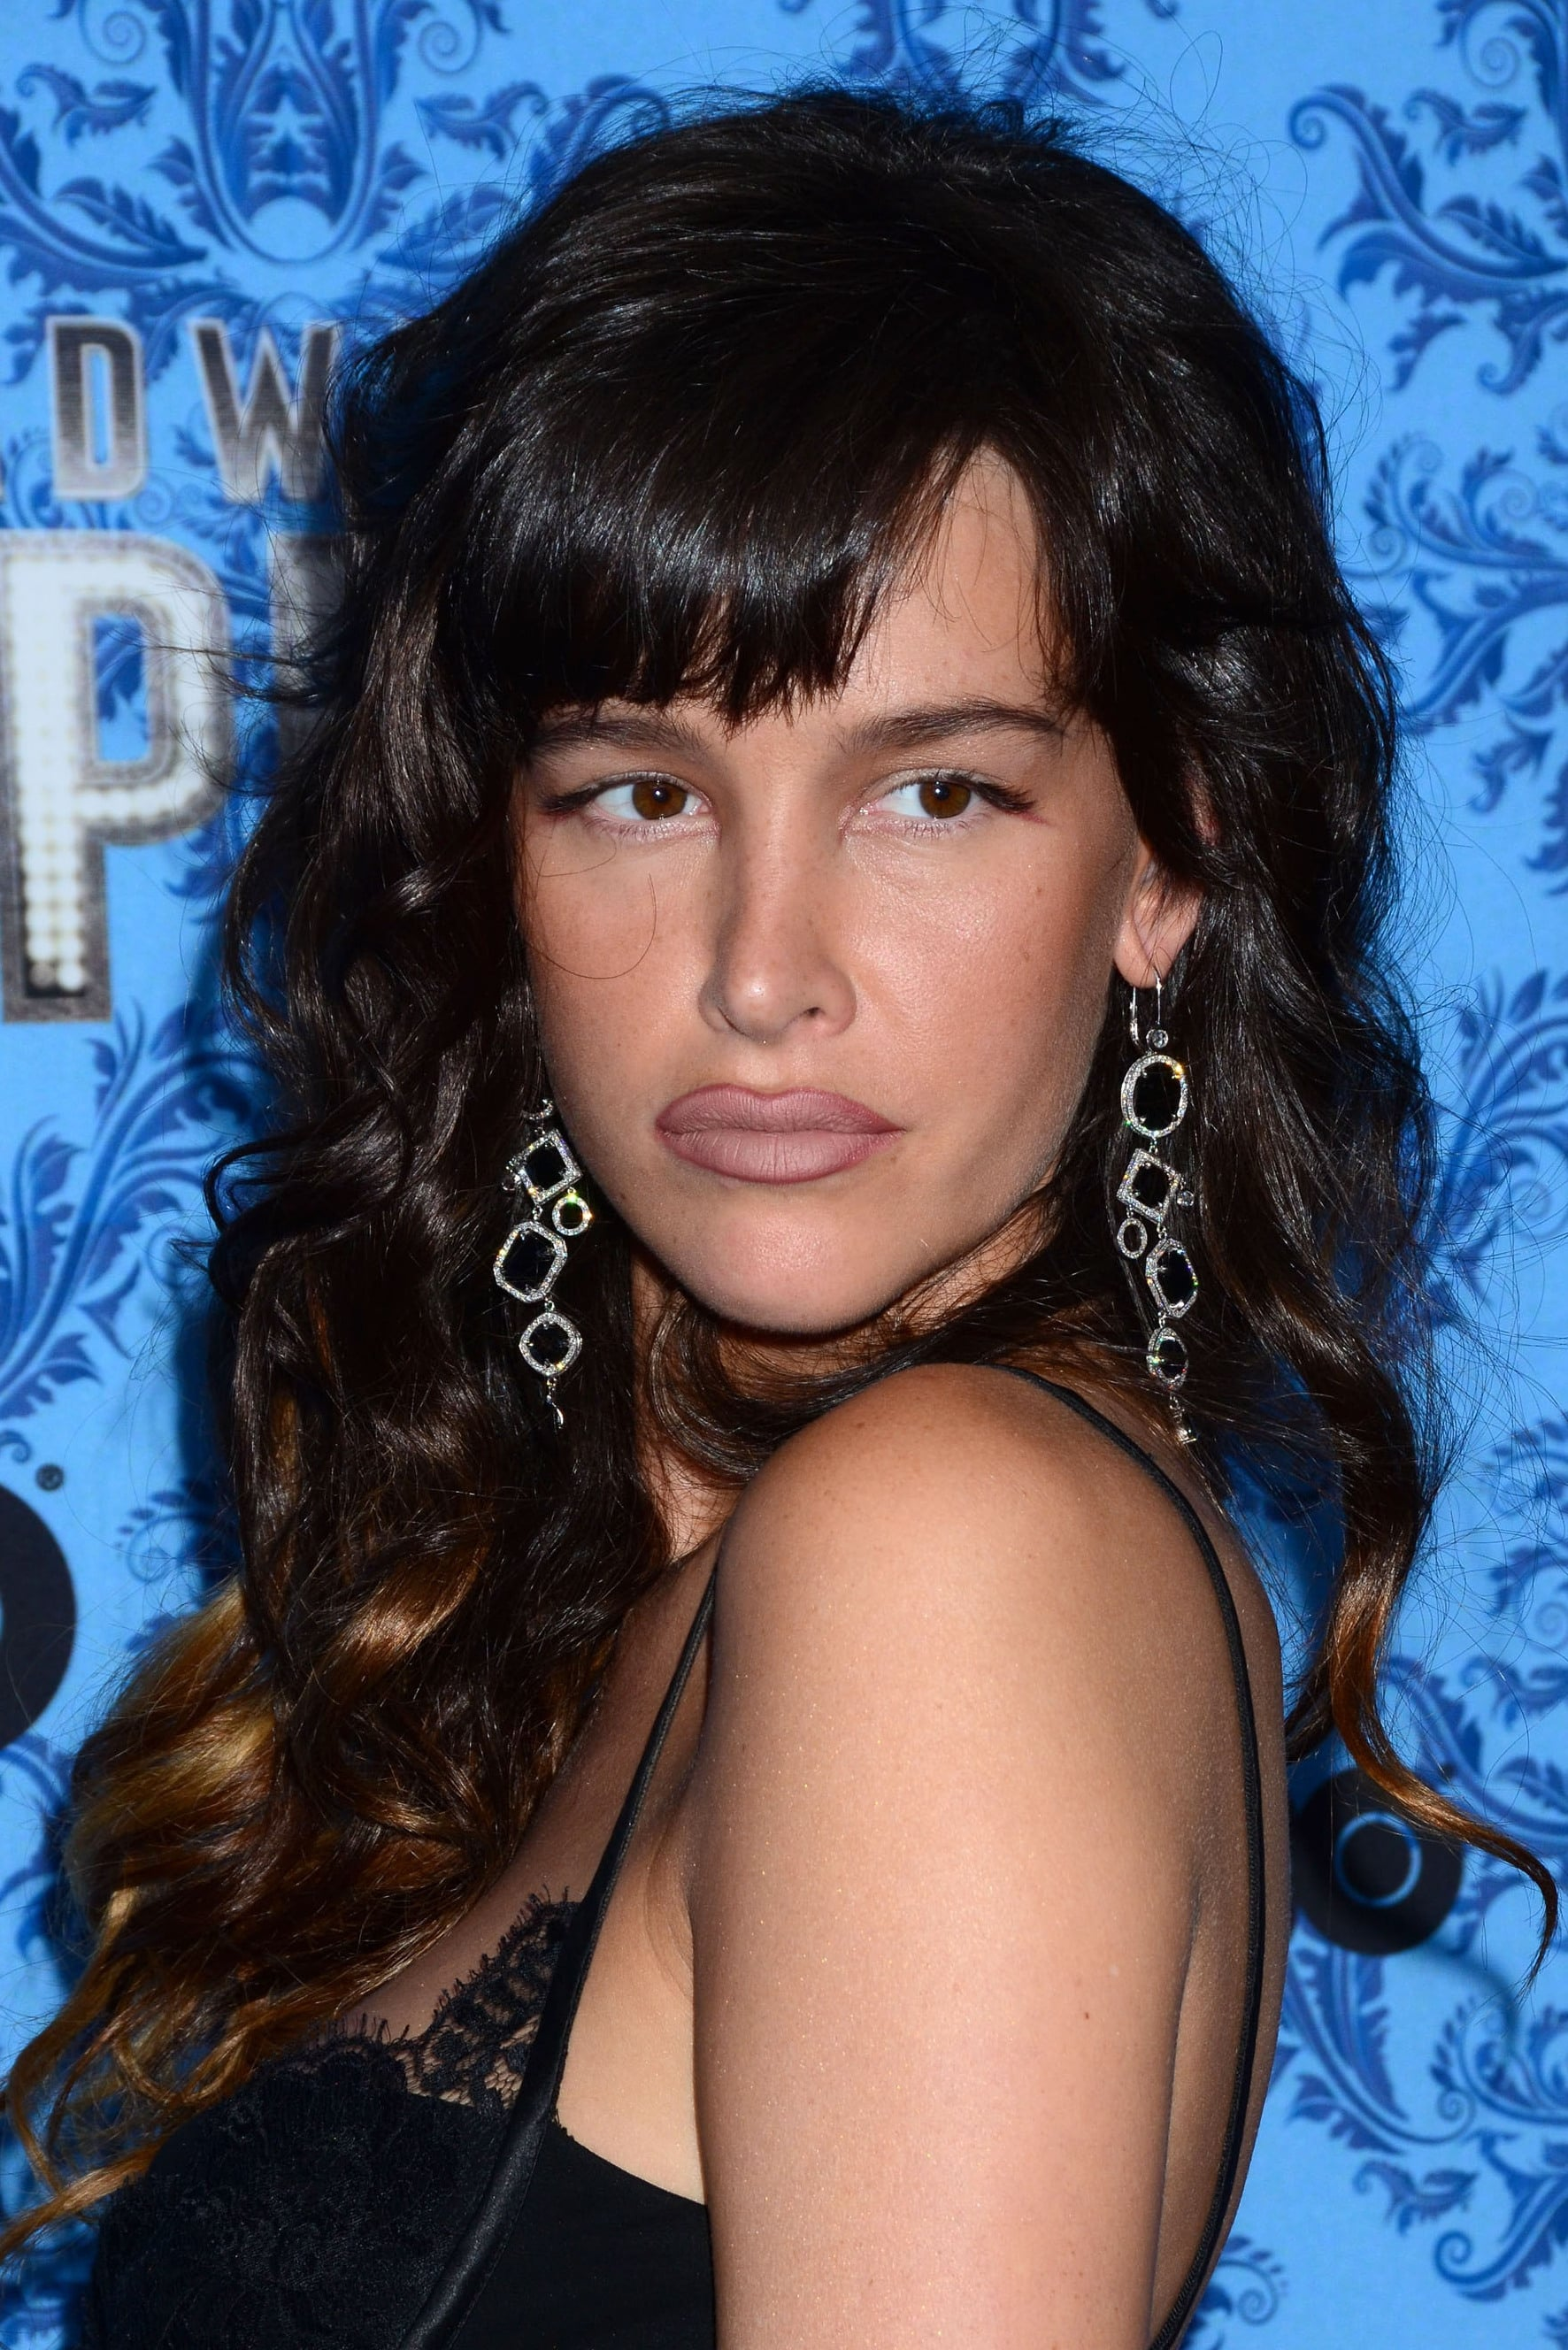 Des Films En Streaming Watch Paz De La Huerta Movies Online Streaming Film En